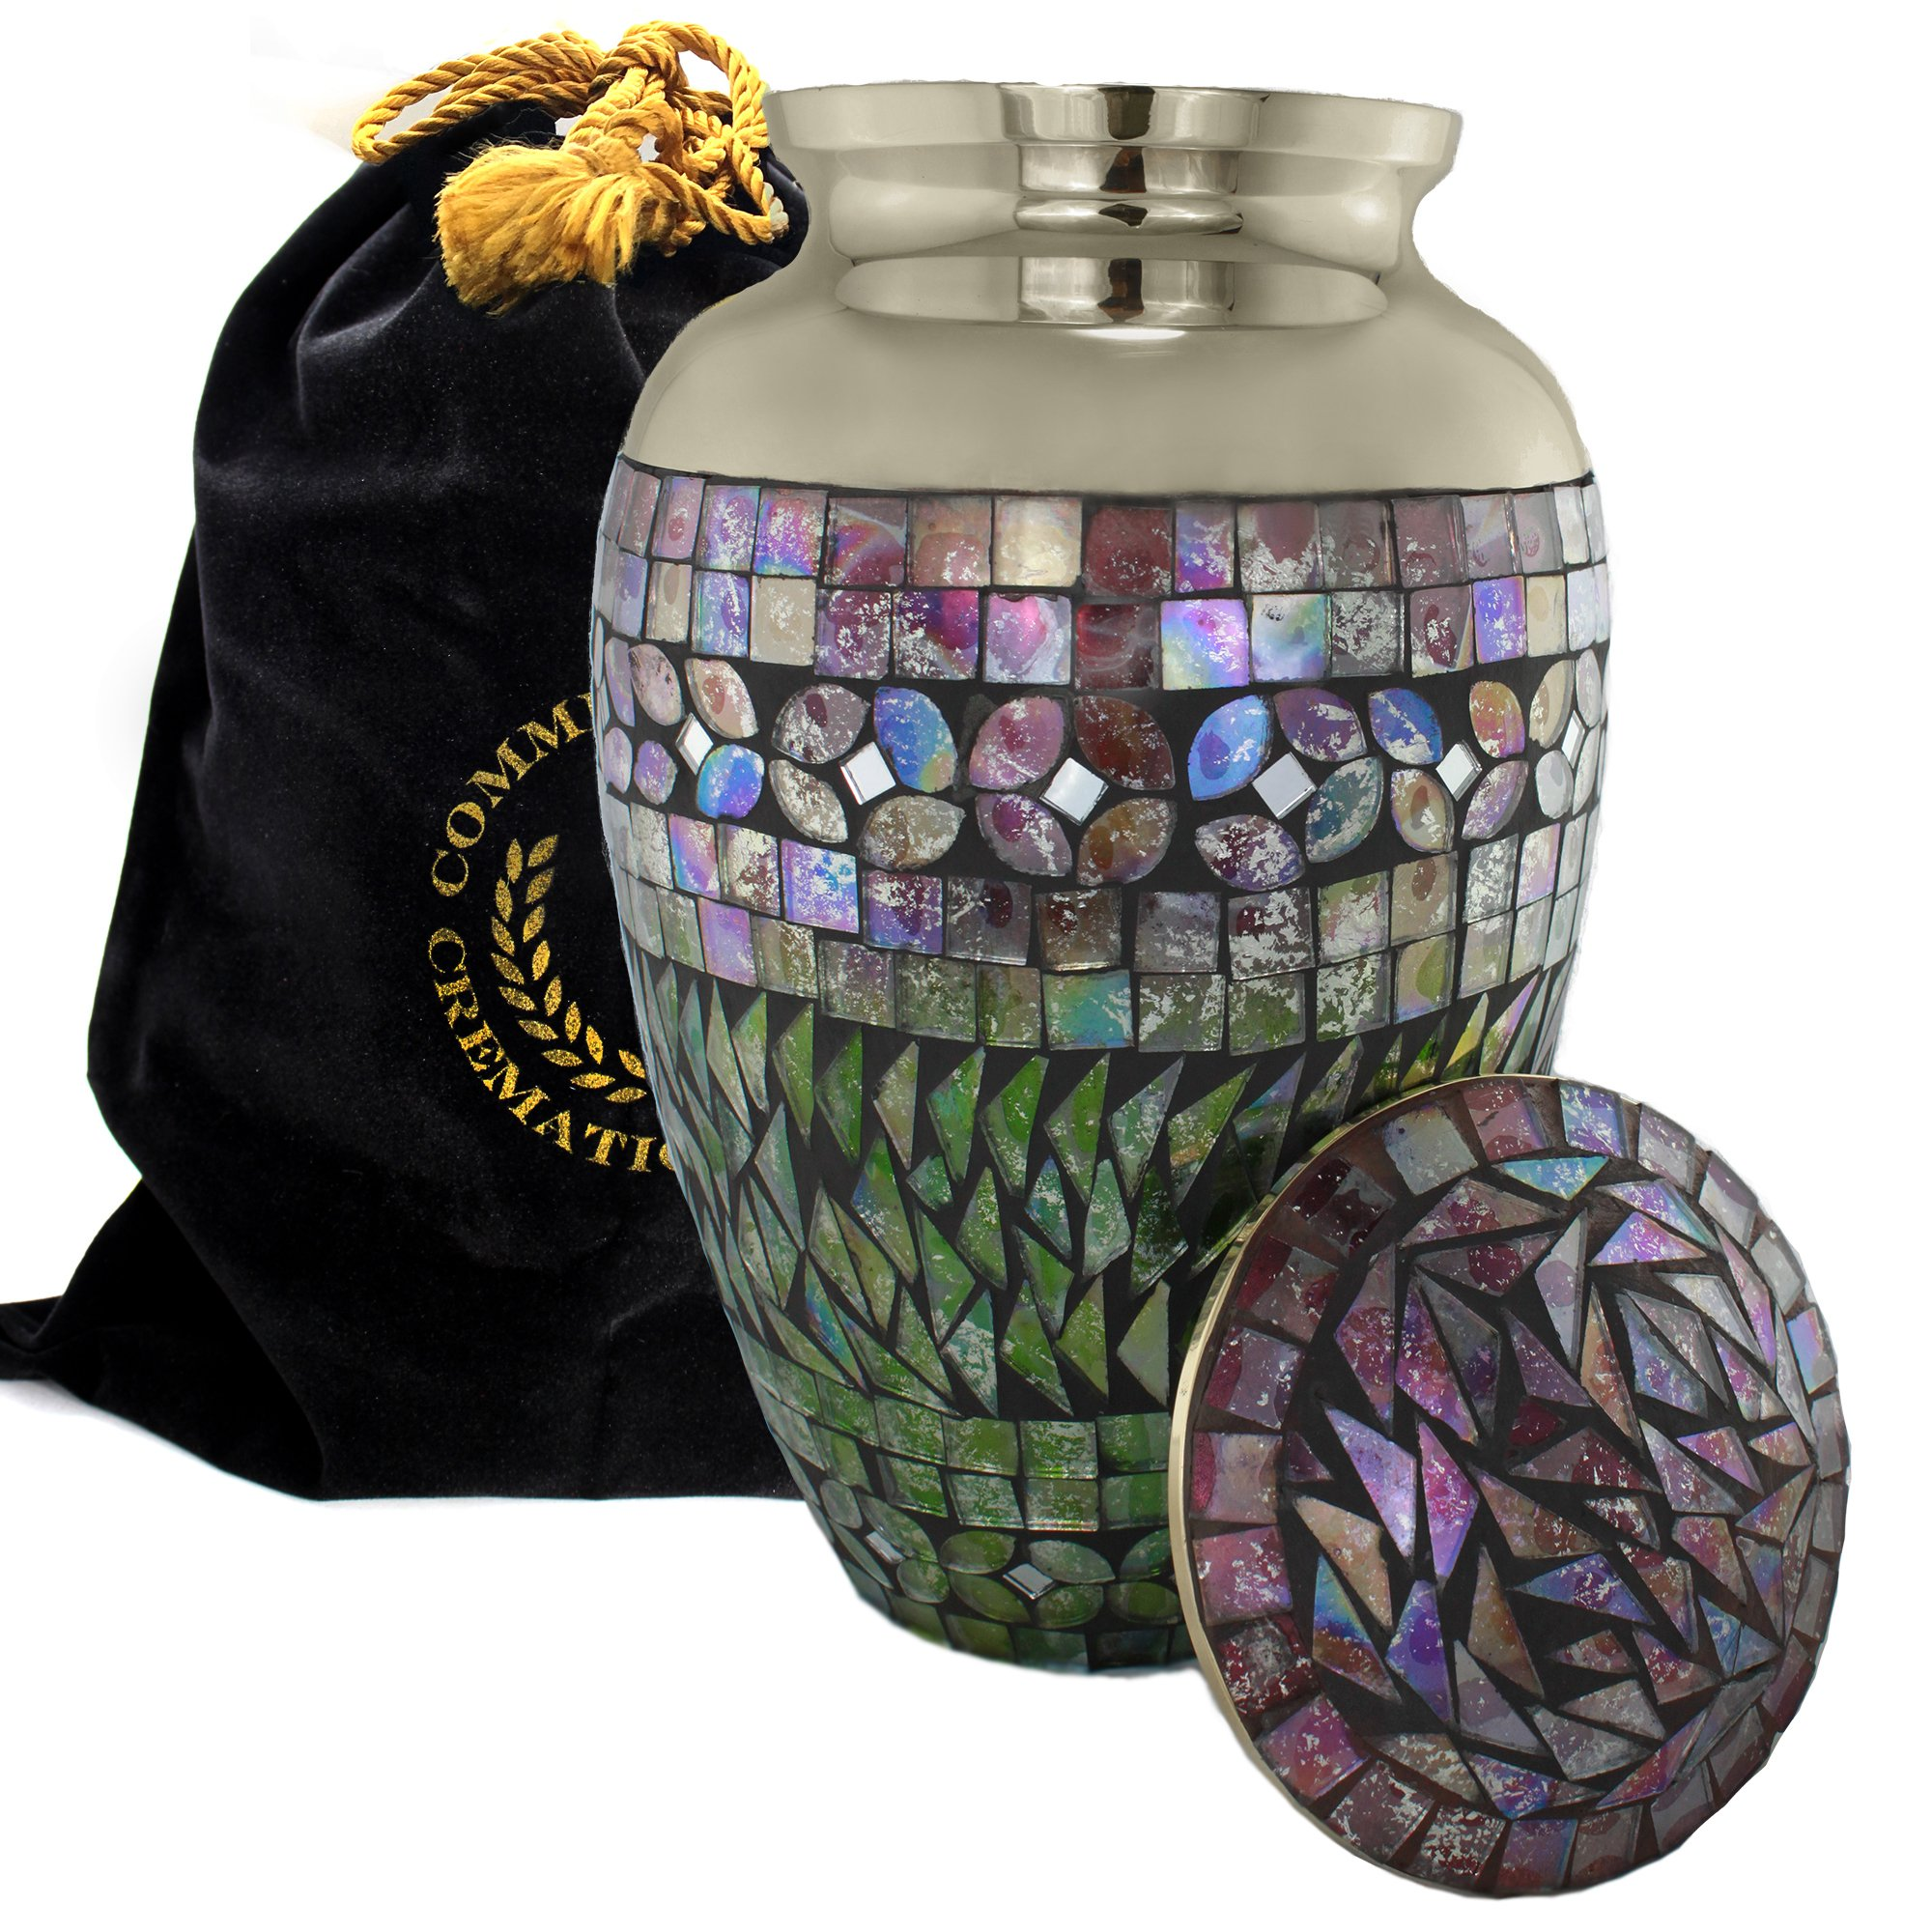 Mosaic Cracked Glass Cremation Urns for Human Ashes - Ideal for Funeral, Burial, Columbarium or Home - Cremation Urns for Human Ashes Adult 200 Cubic inches - Urns for Ashes (Large/Adult)